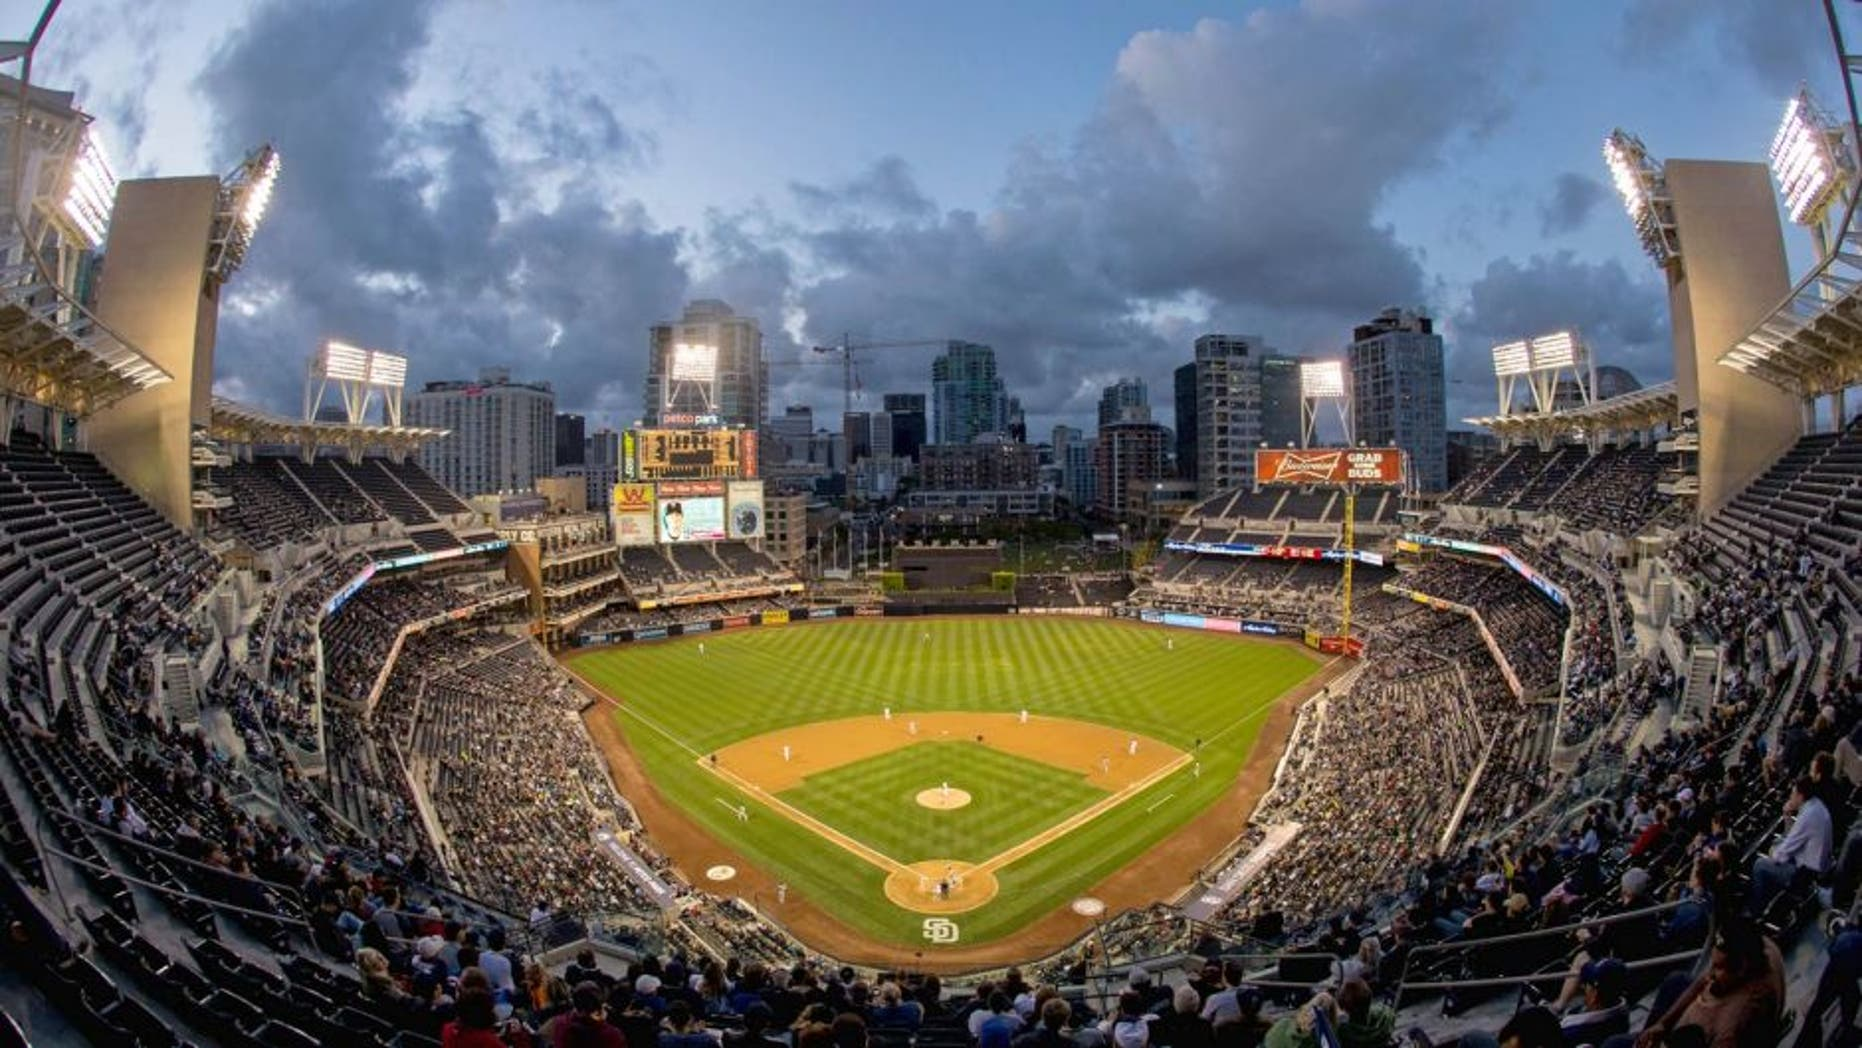 SAN DIEGO, CA - MAY 20: A general view of Petco Park during a game between the Minnesota Twins and San Diego Padres on May 20, 2014 at Petco Park in San Diego, California. The Twins defeated the Padres 5-3. (Photo by Brace Hemmelgarn/Minnesota Twins/Getty Images)